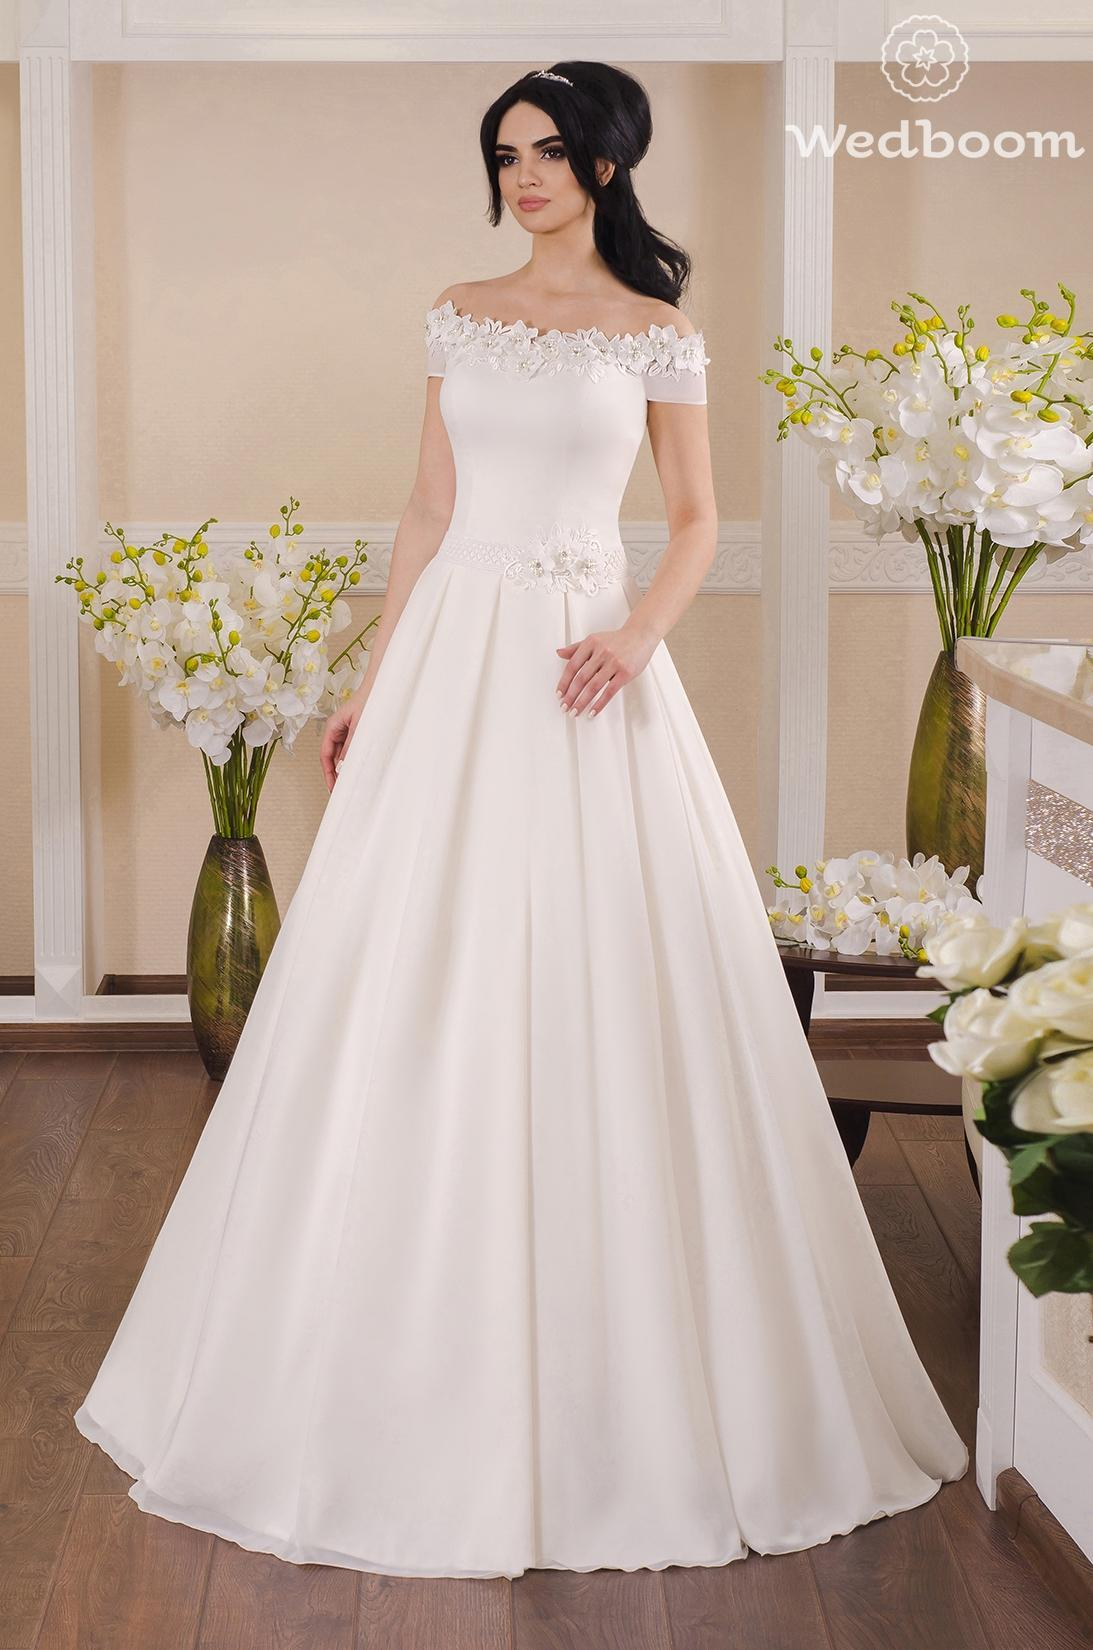 Bouquet Sposa Online.Wedding Dress Angelica Sposa 4151 Wedboom Eu Online Store